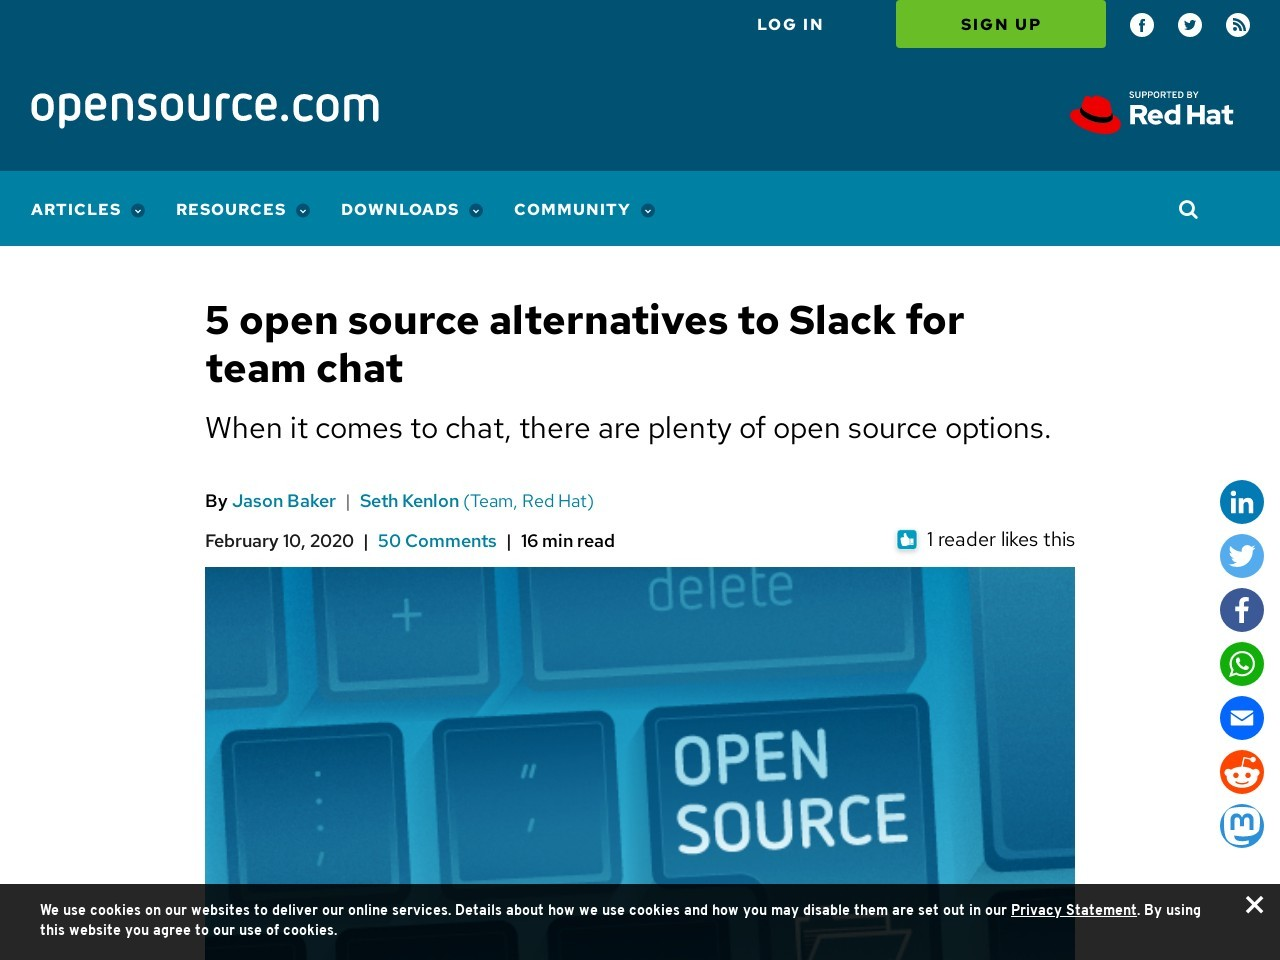 4 open source alternatives to Slack for team chat